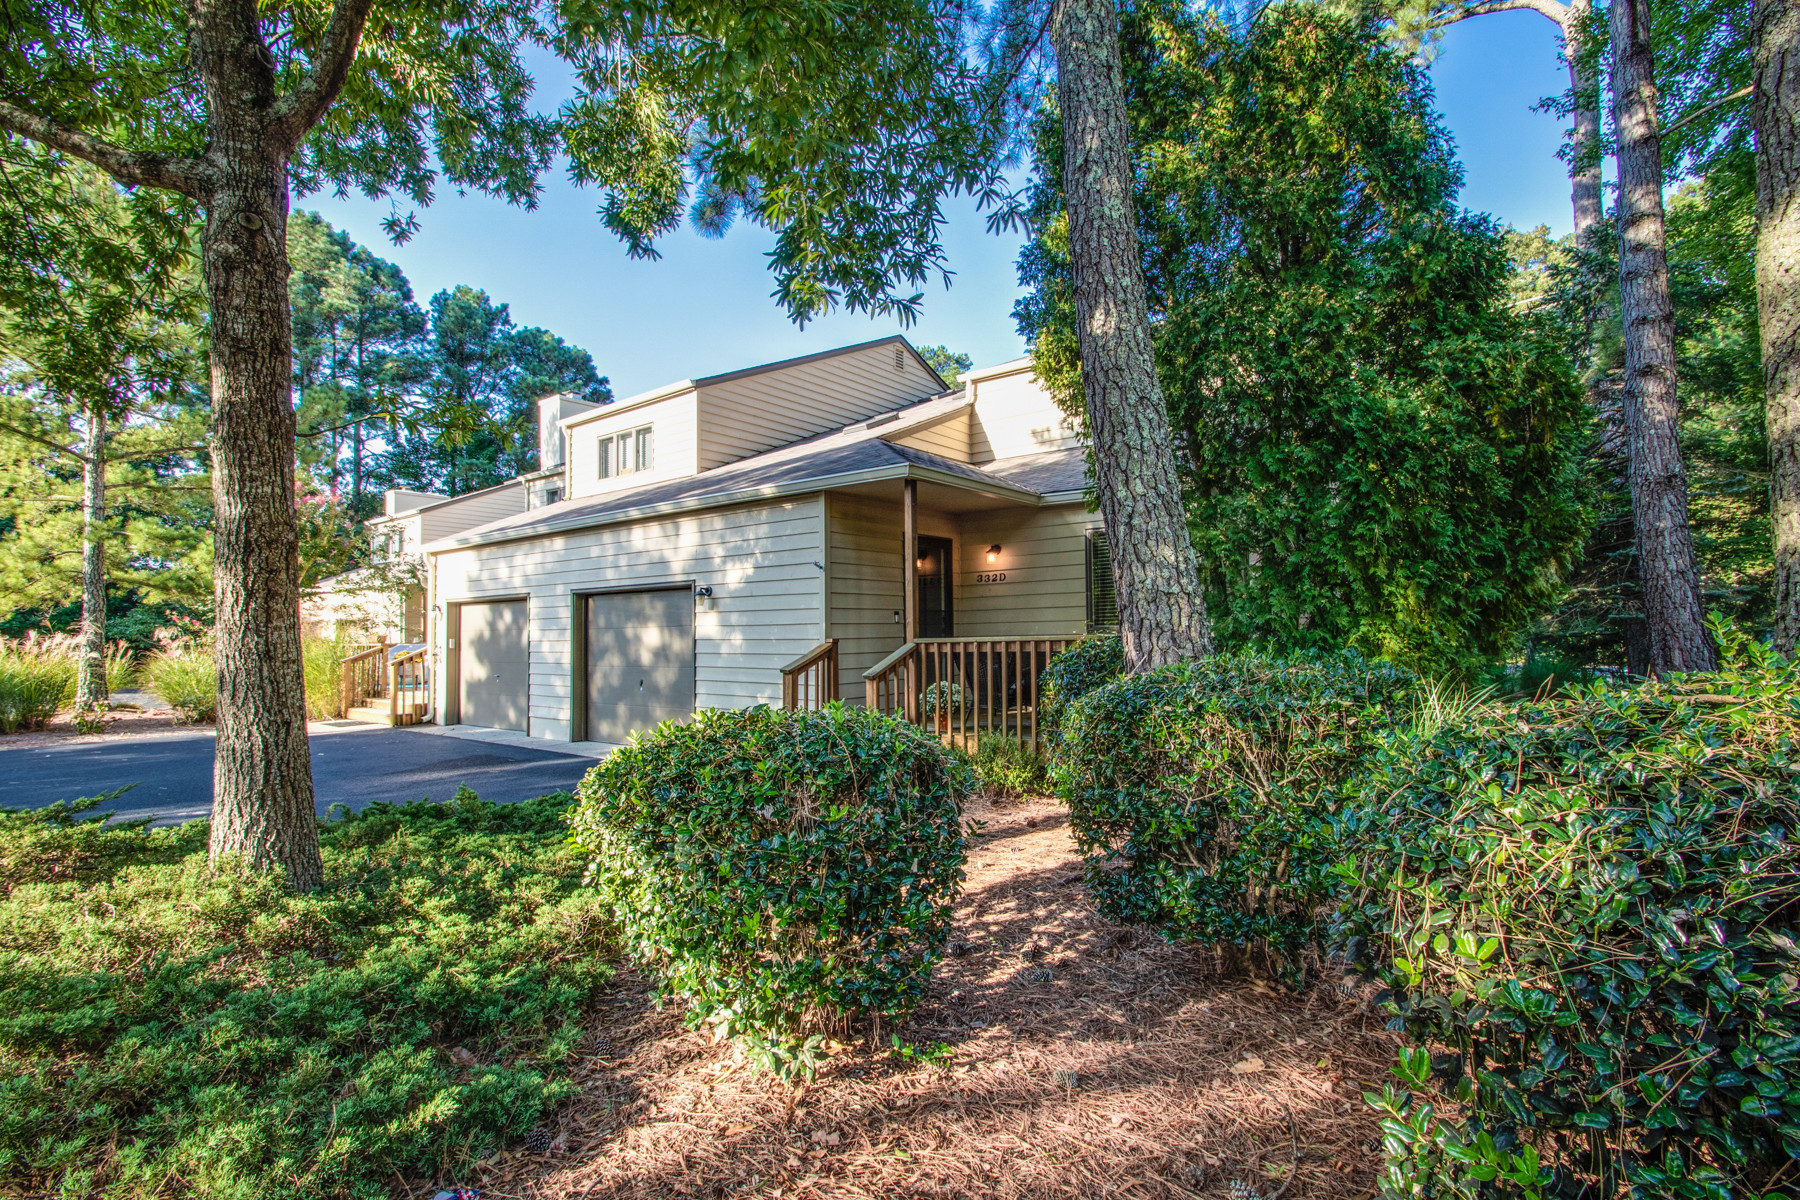 Renovated 4-Bedroom House In Bethany Proper